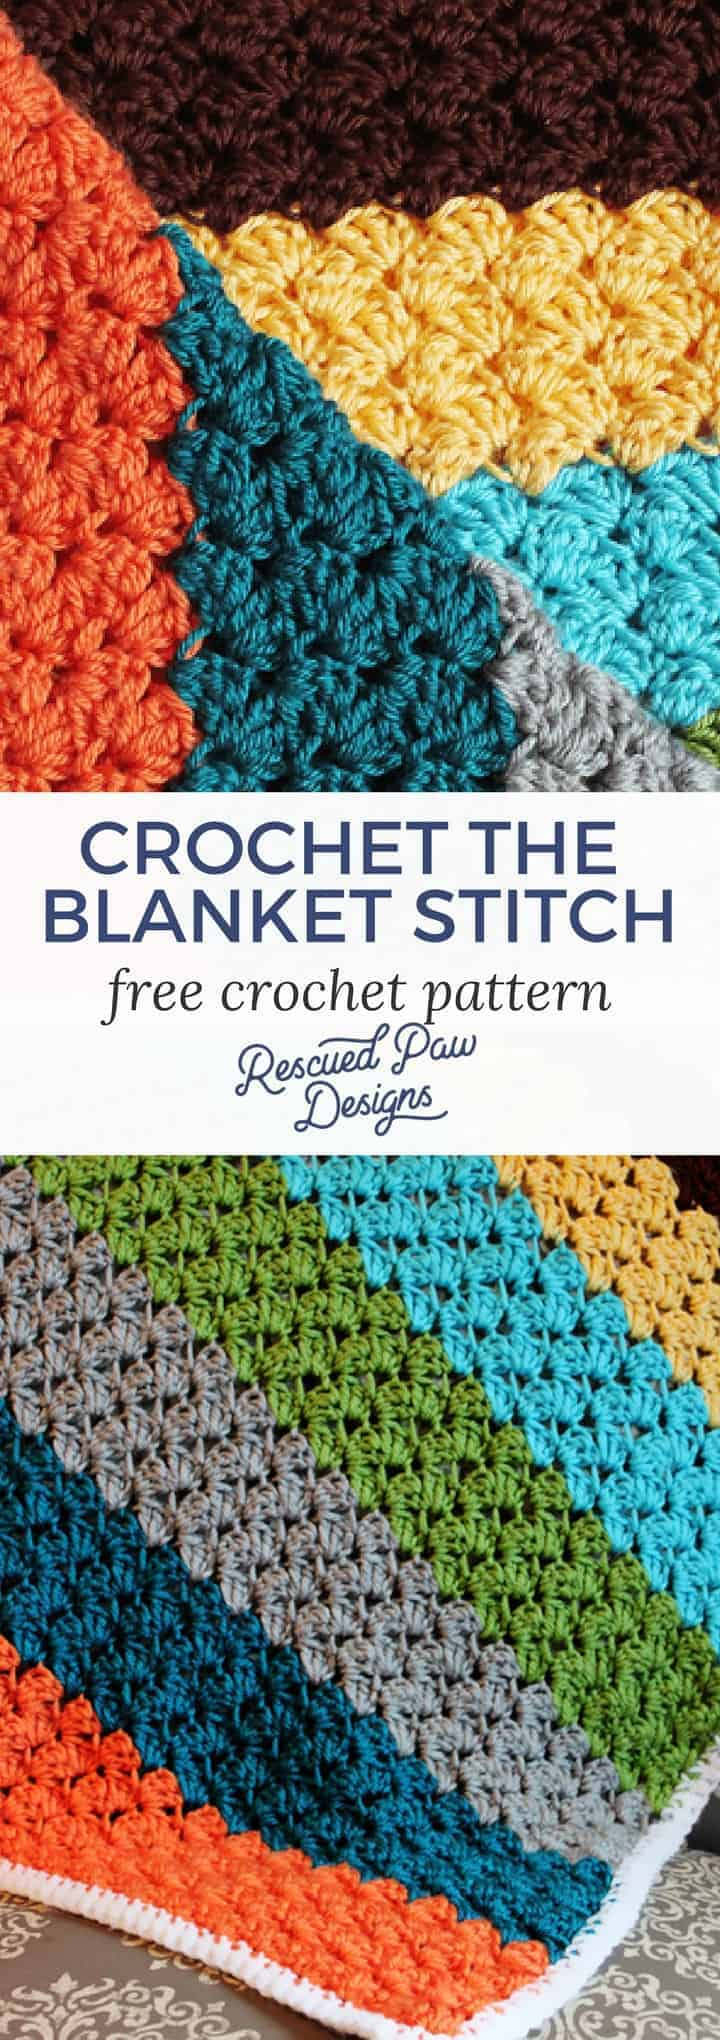 Crochet Blanket Stitch Pattern - A Crochet Stitch for Blankets